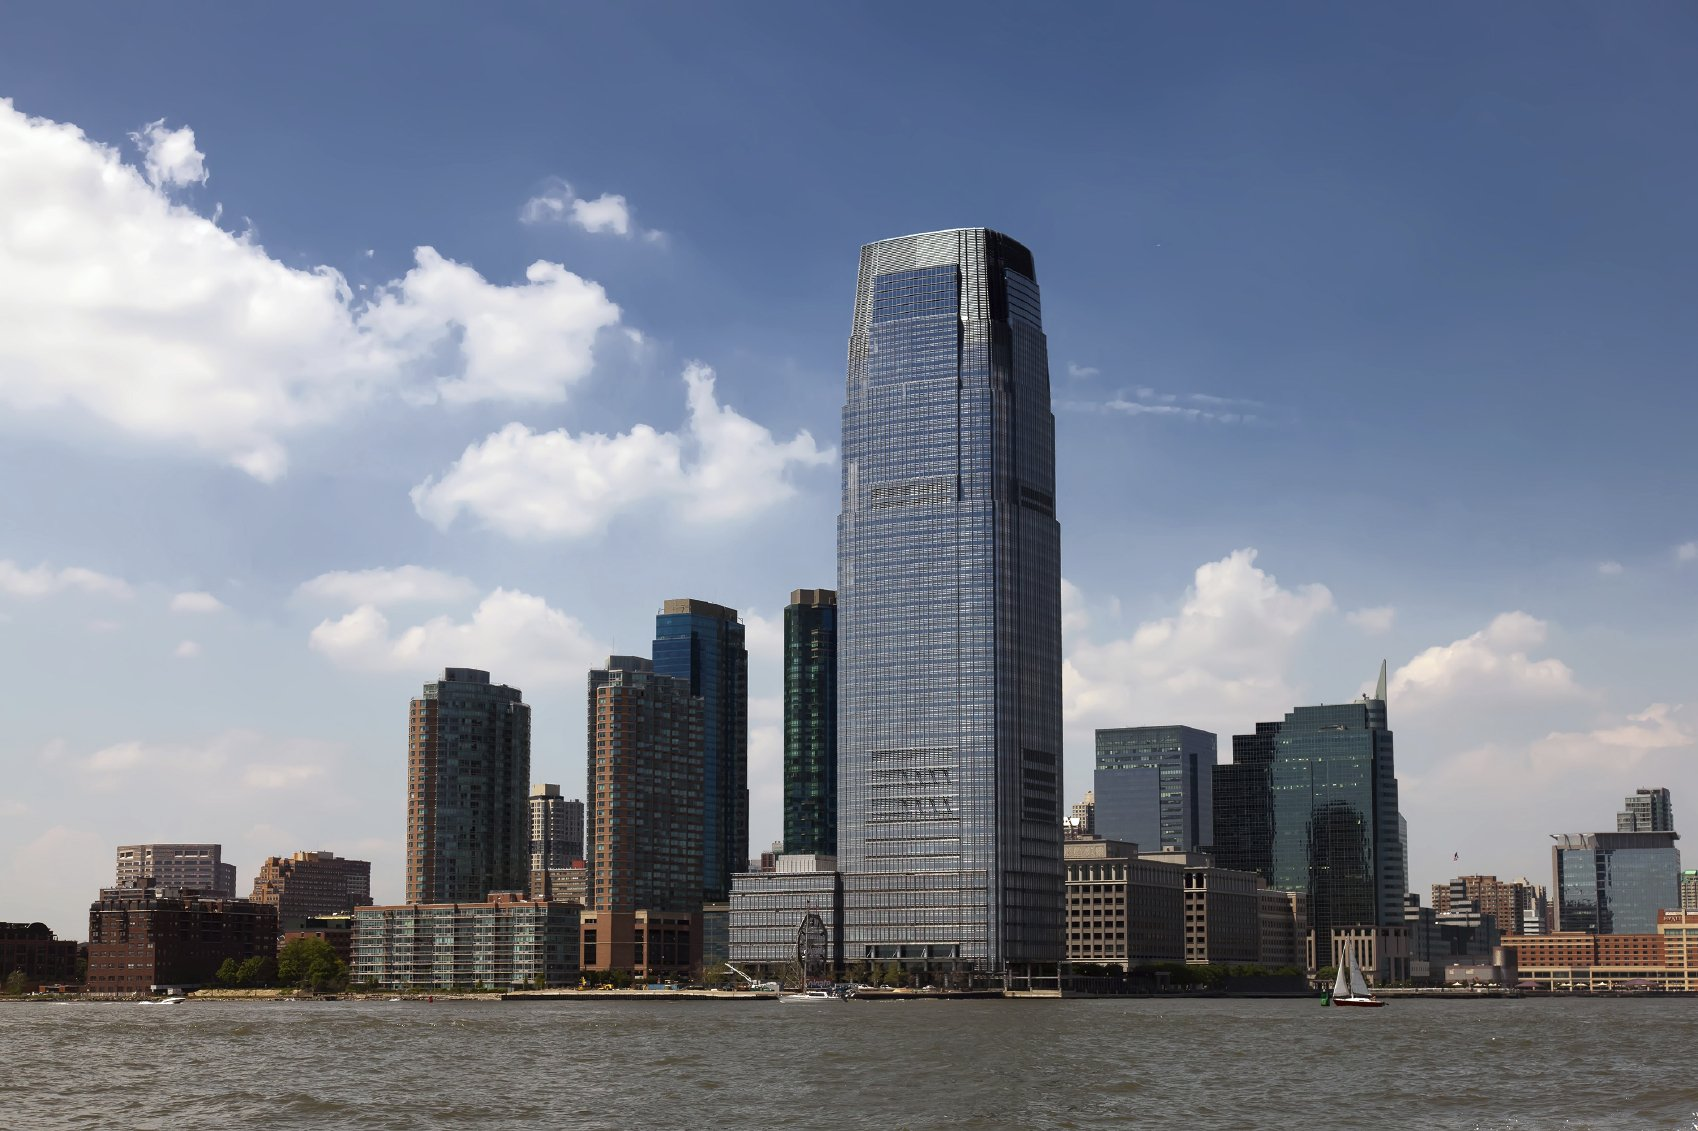 Goldman Sachs Tower in Jersey City, New Jersey on June 1st, 2013. Completed in 2004 the 42-story tower is the tallest building in New Jersey